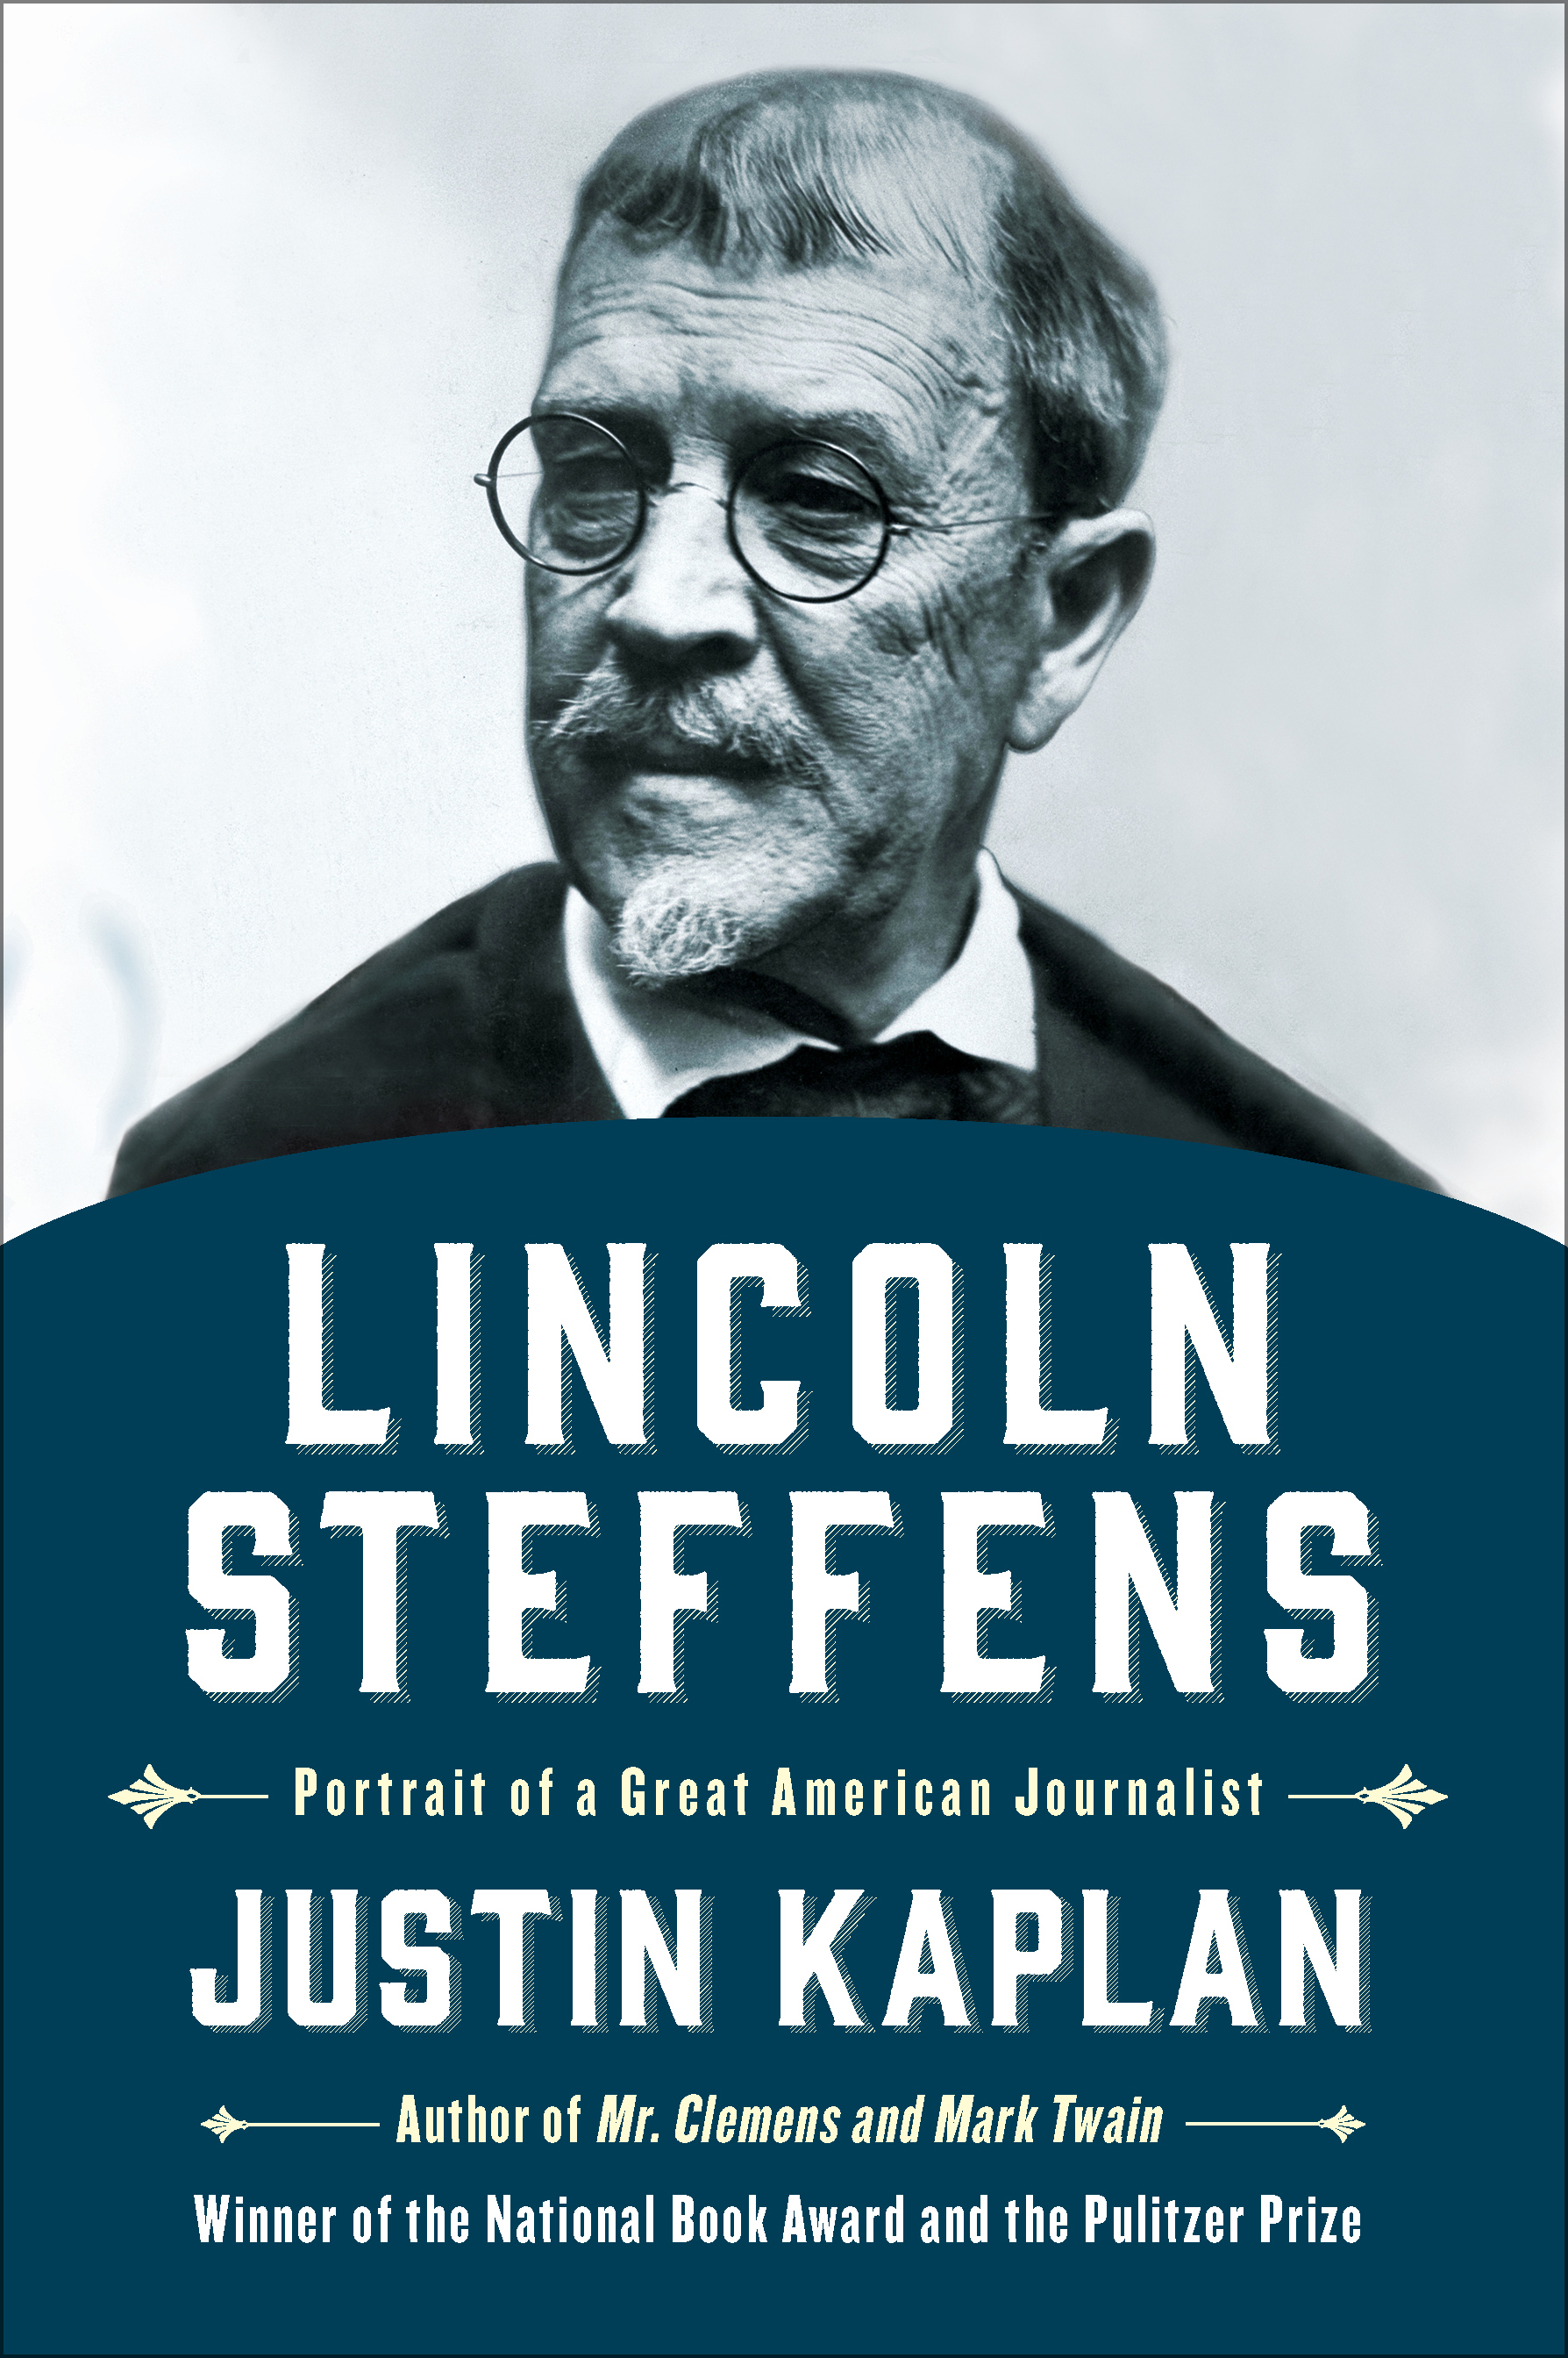 connection book abraham investigates modern smith the joseph of a hypothesis dp between possible and day mormon abolitionist lincoln